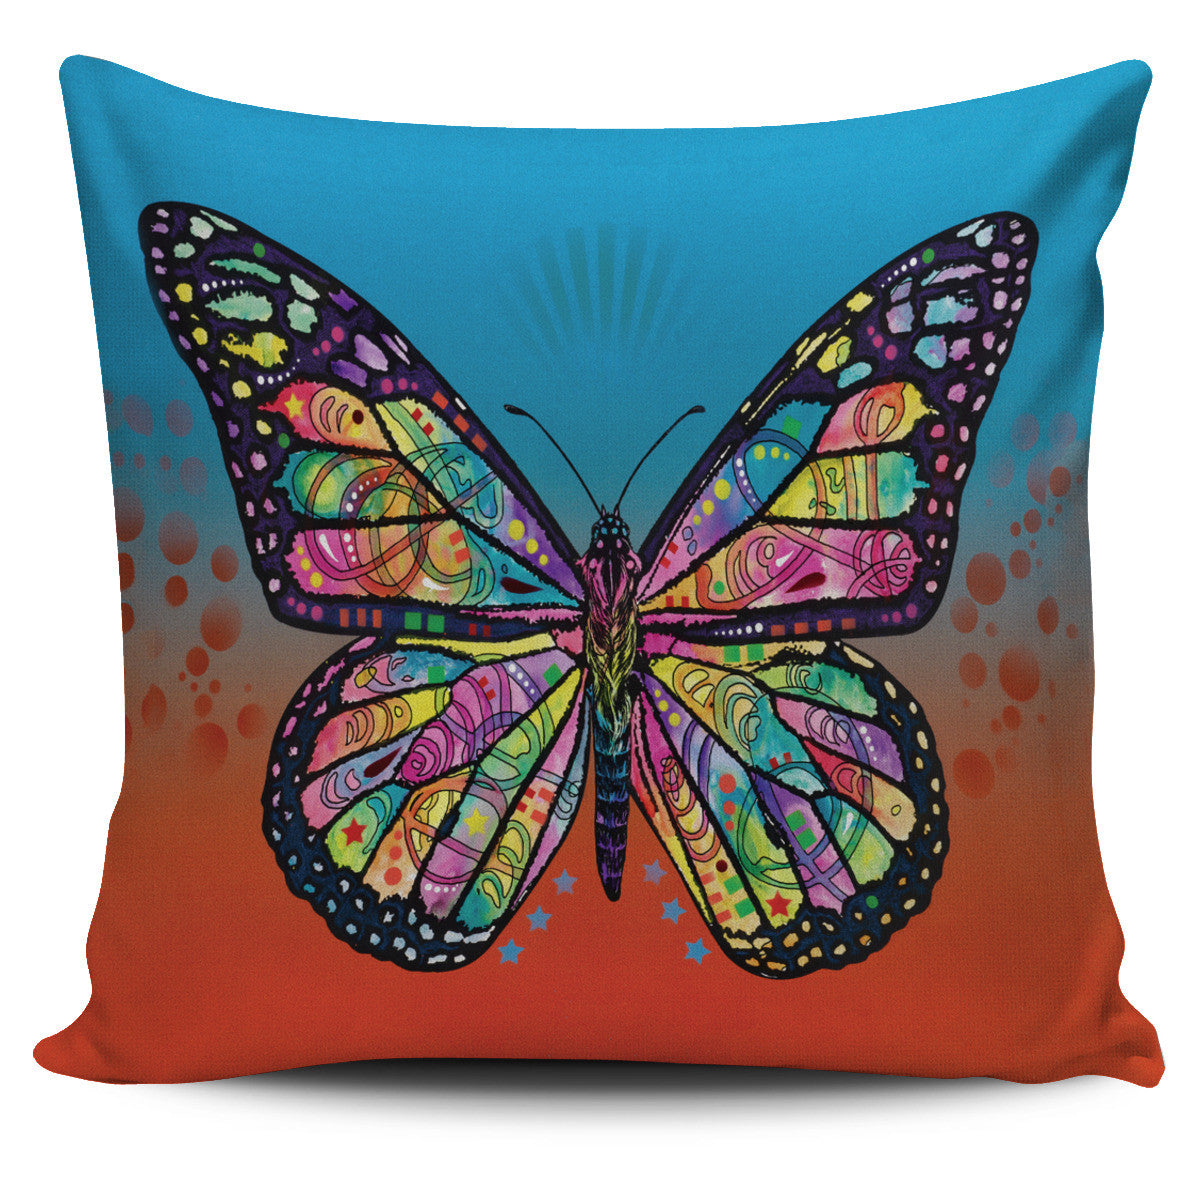 Butterfly Series Pillow Covers Offer